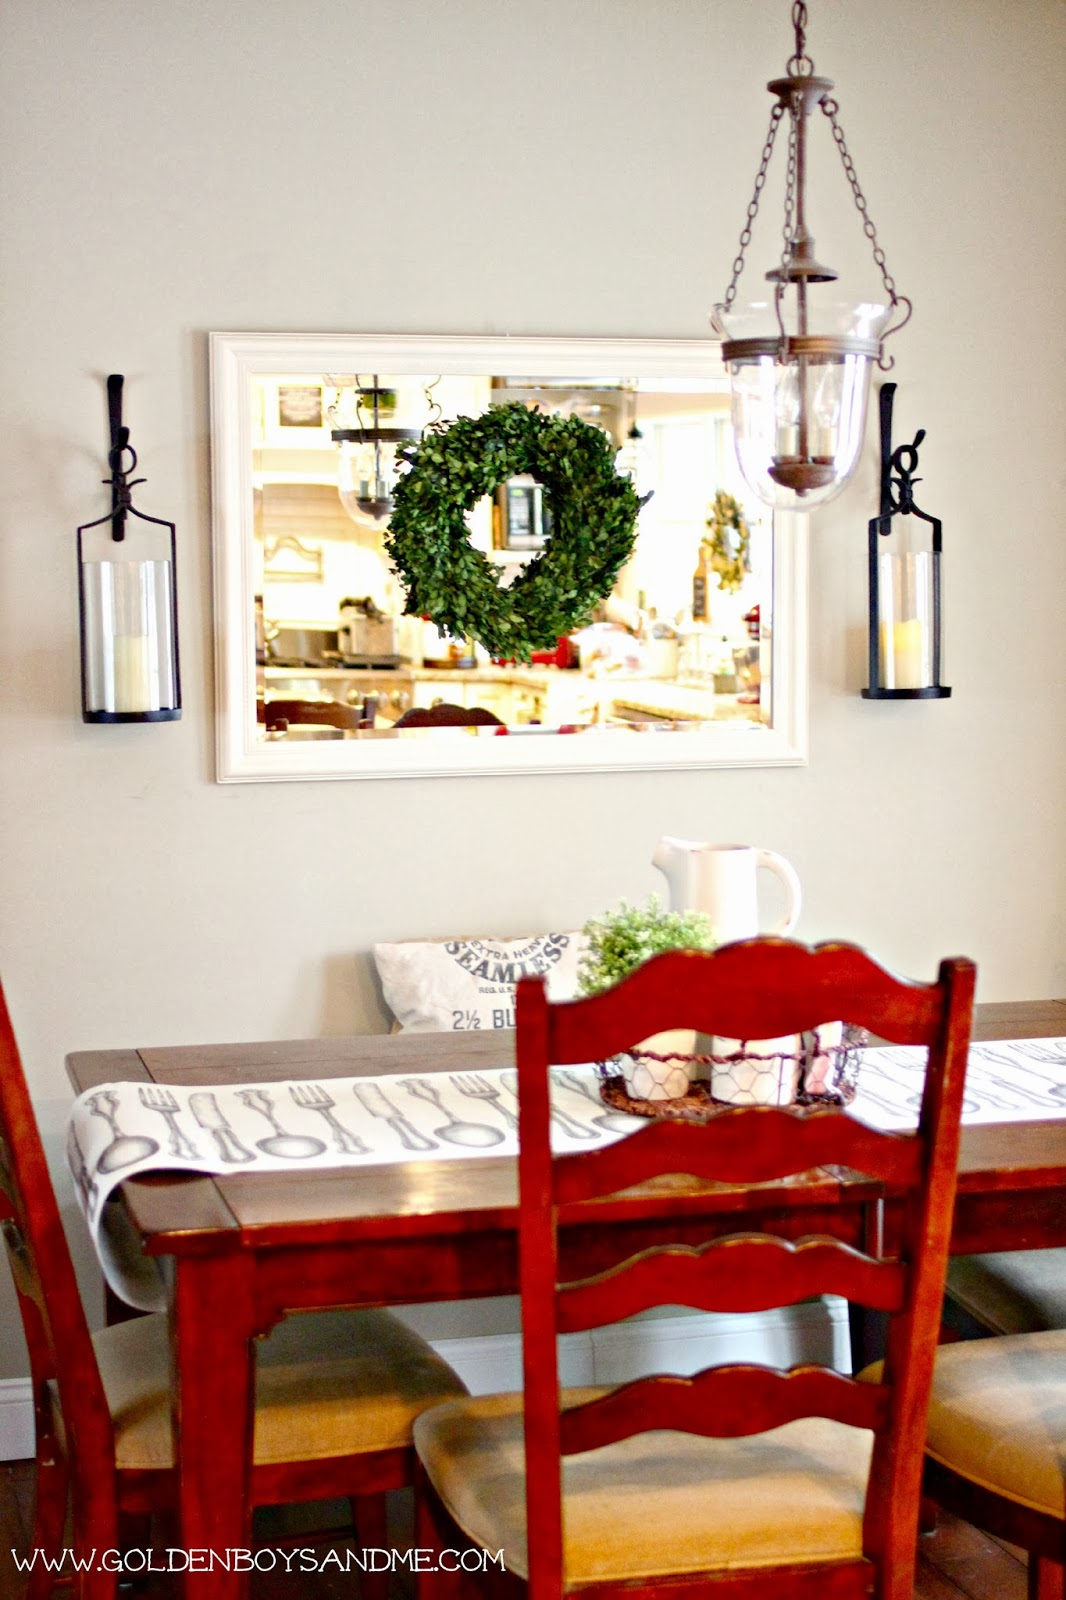 Pottery Barn artisinal lantern candle holders and preserved boxwood wreath | www.goldenboysandme.com